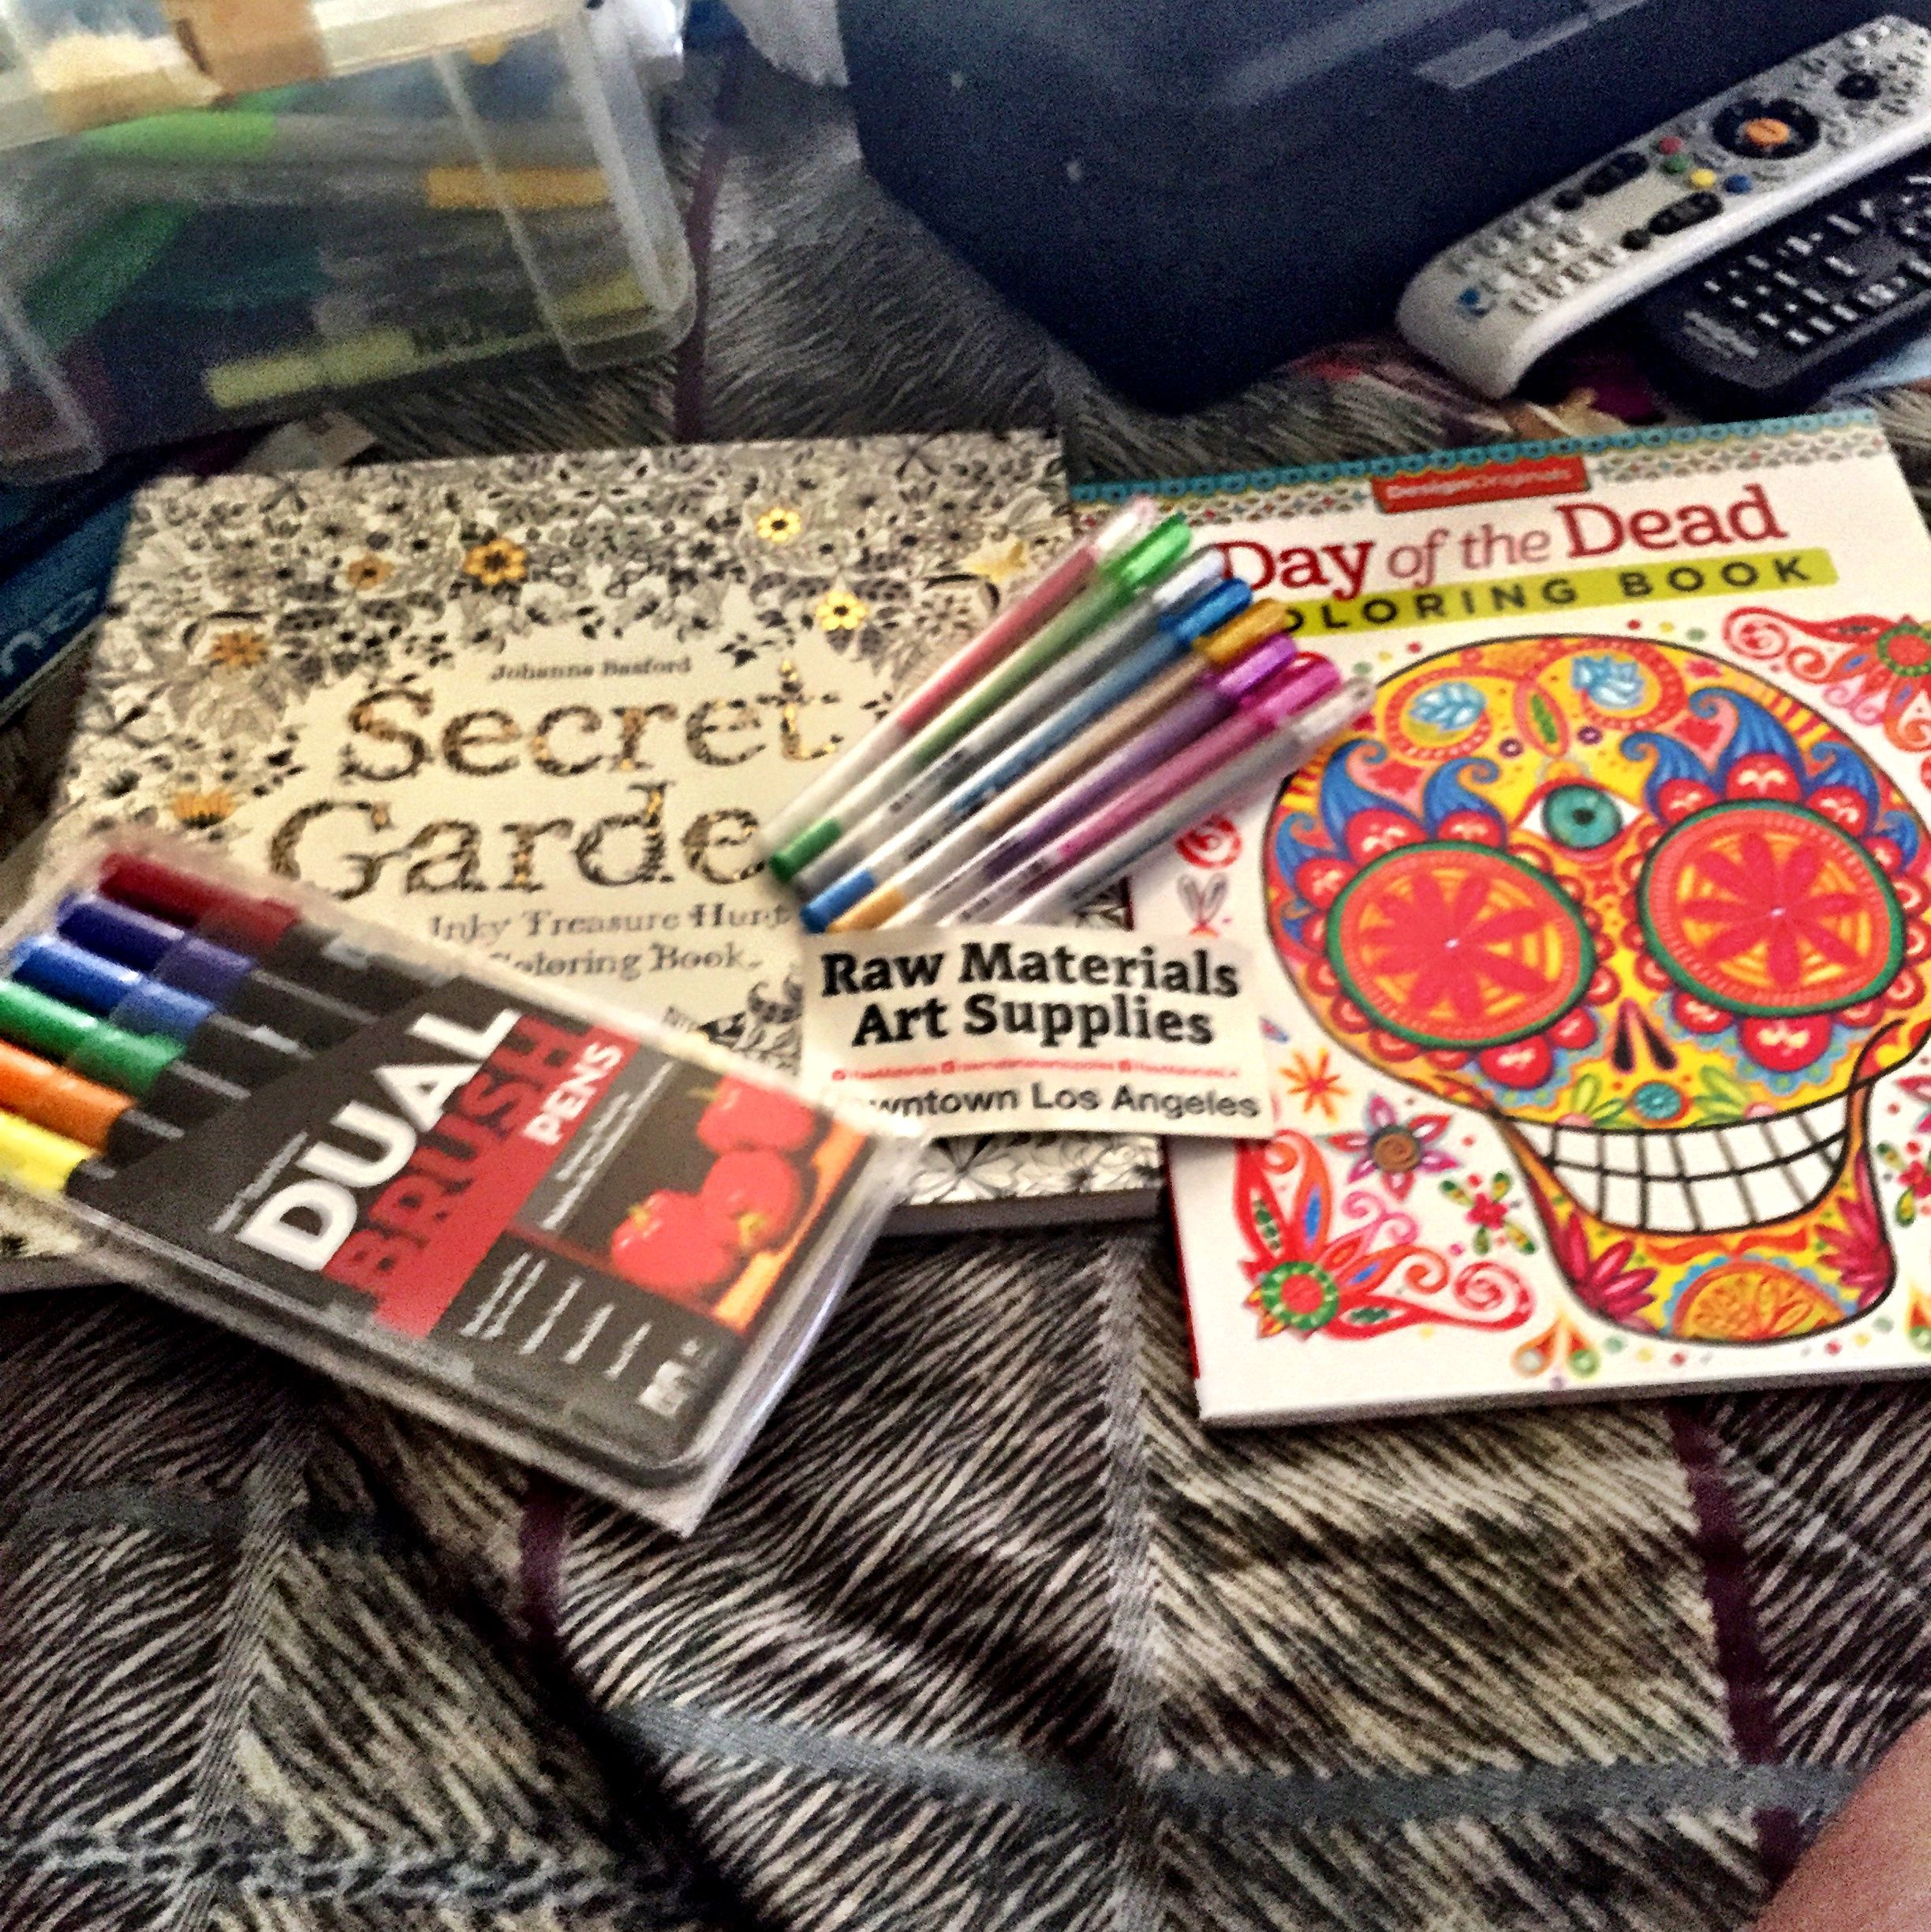 Some Stuff I Have Tombow Markers Tombowusa Craft Secret Garden Coloring Book Buy It At Amazon Day Of The Dead